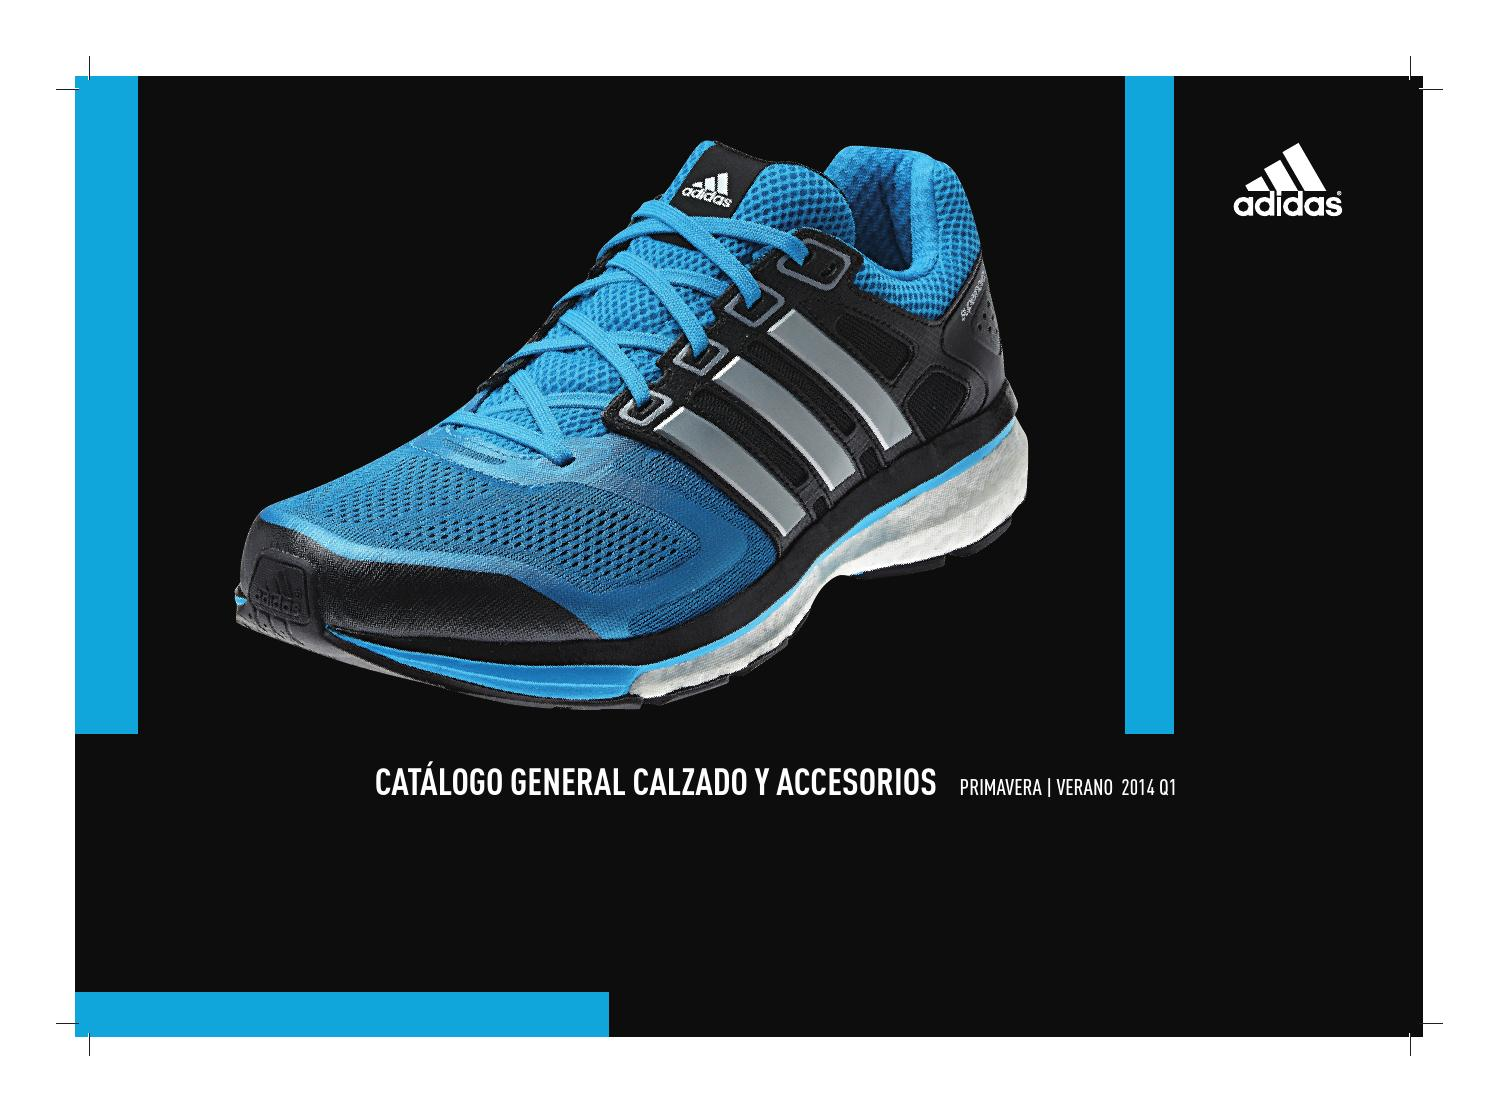 sneakers for cheap e02d1 d246f Q1ss14 general calzado y accesorios by Futbol y mas Deportes